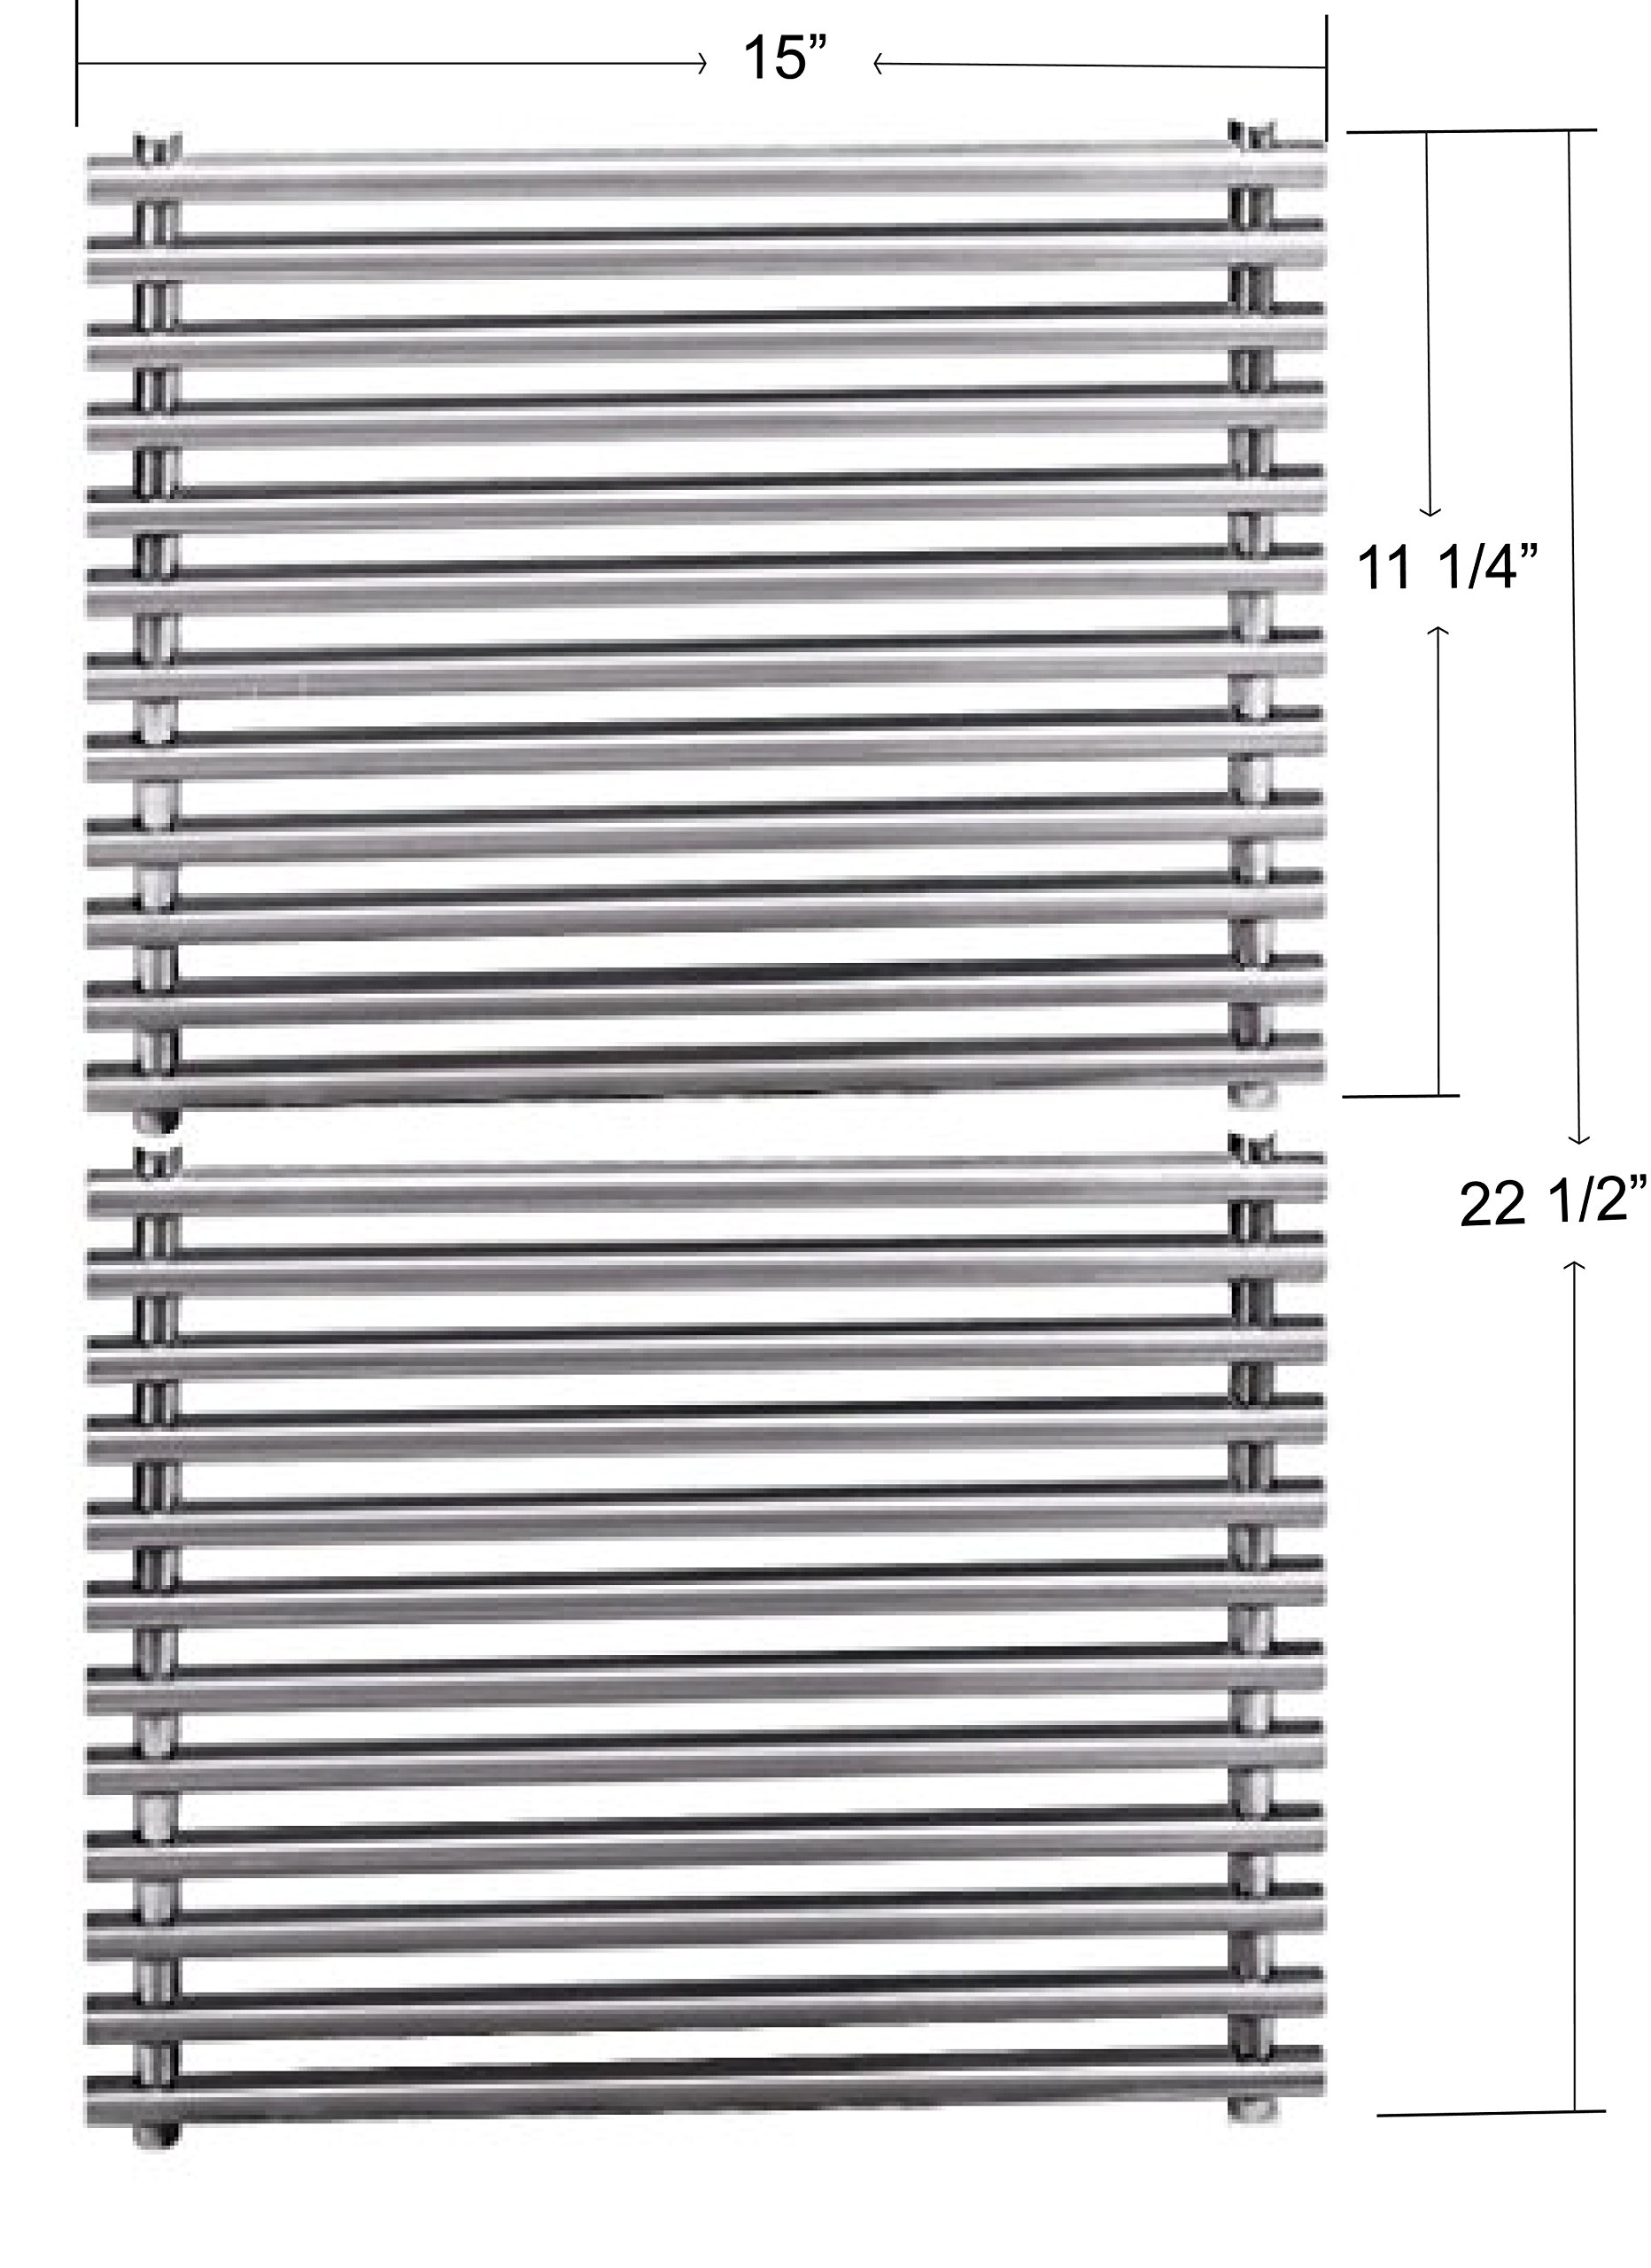 """Grill Valueparts REV521SM Replacement Stainless Steel Cooking Grid / Cooking Grate For Select Weber Grill Models, Set of 2, (Dims: 15"""" D X 11 1/4"""" W For each unit, 15"""" D X 22 1/2"""" W For 2 units)"""